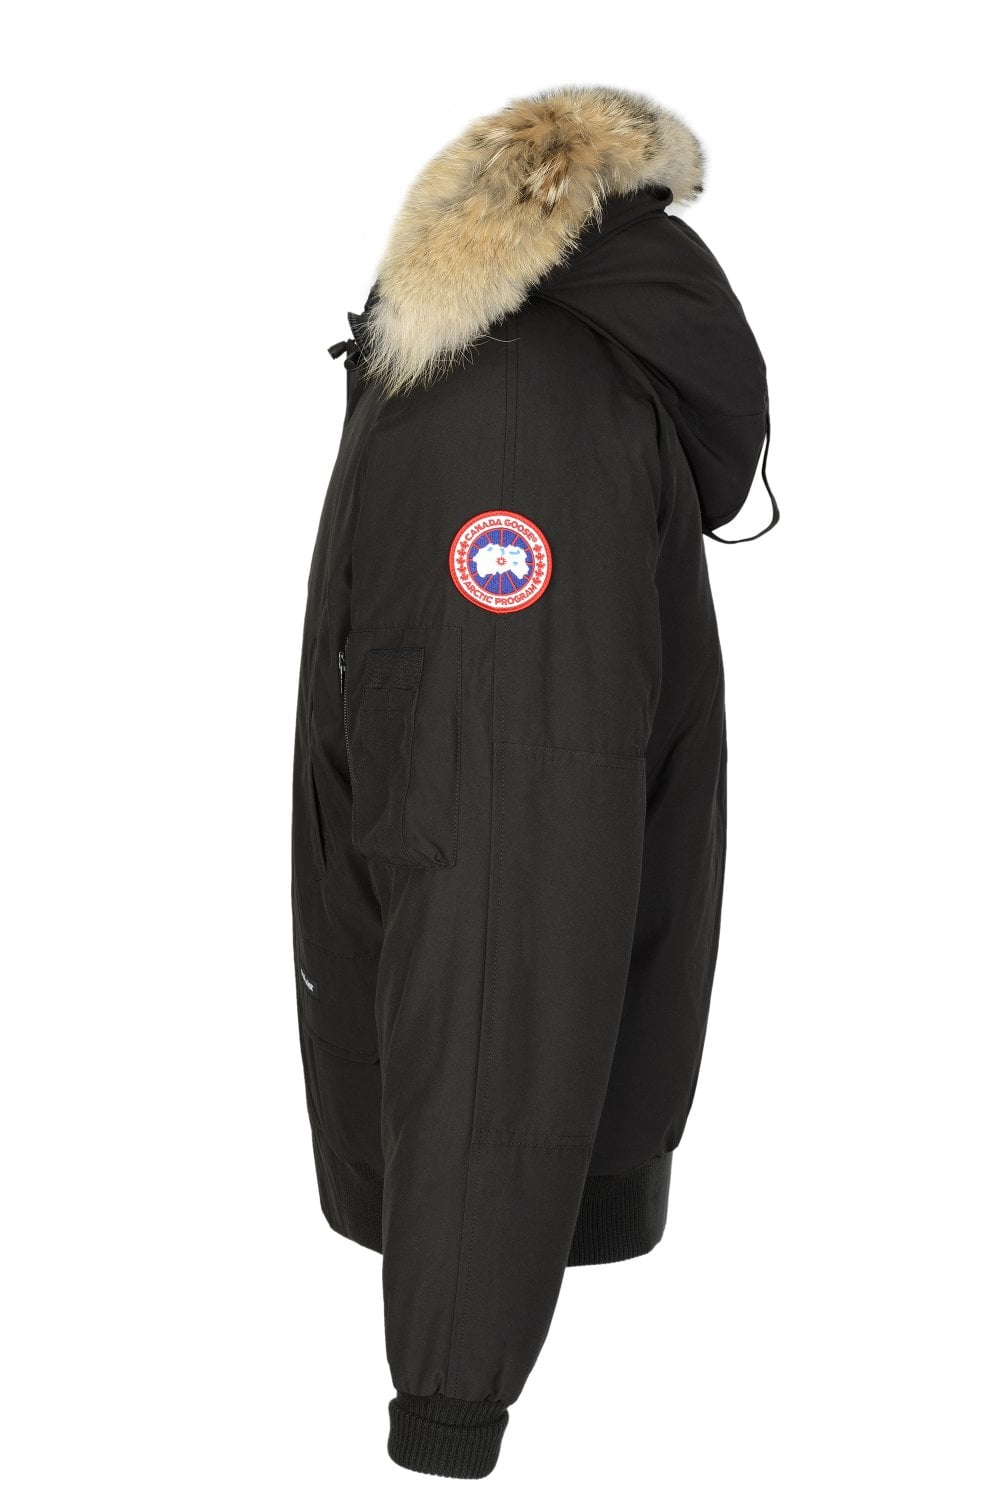 discount shop great discount for competitive price Chilliwack Bomber Jacket